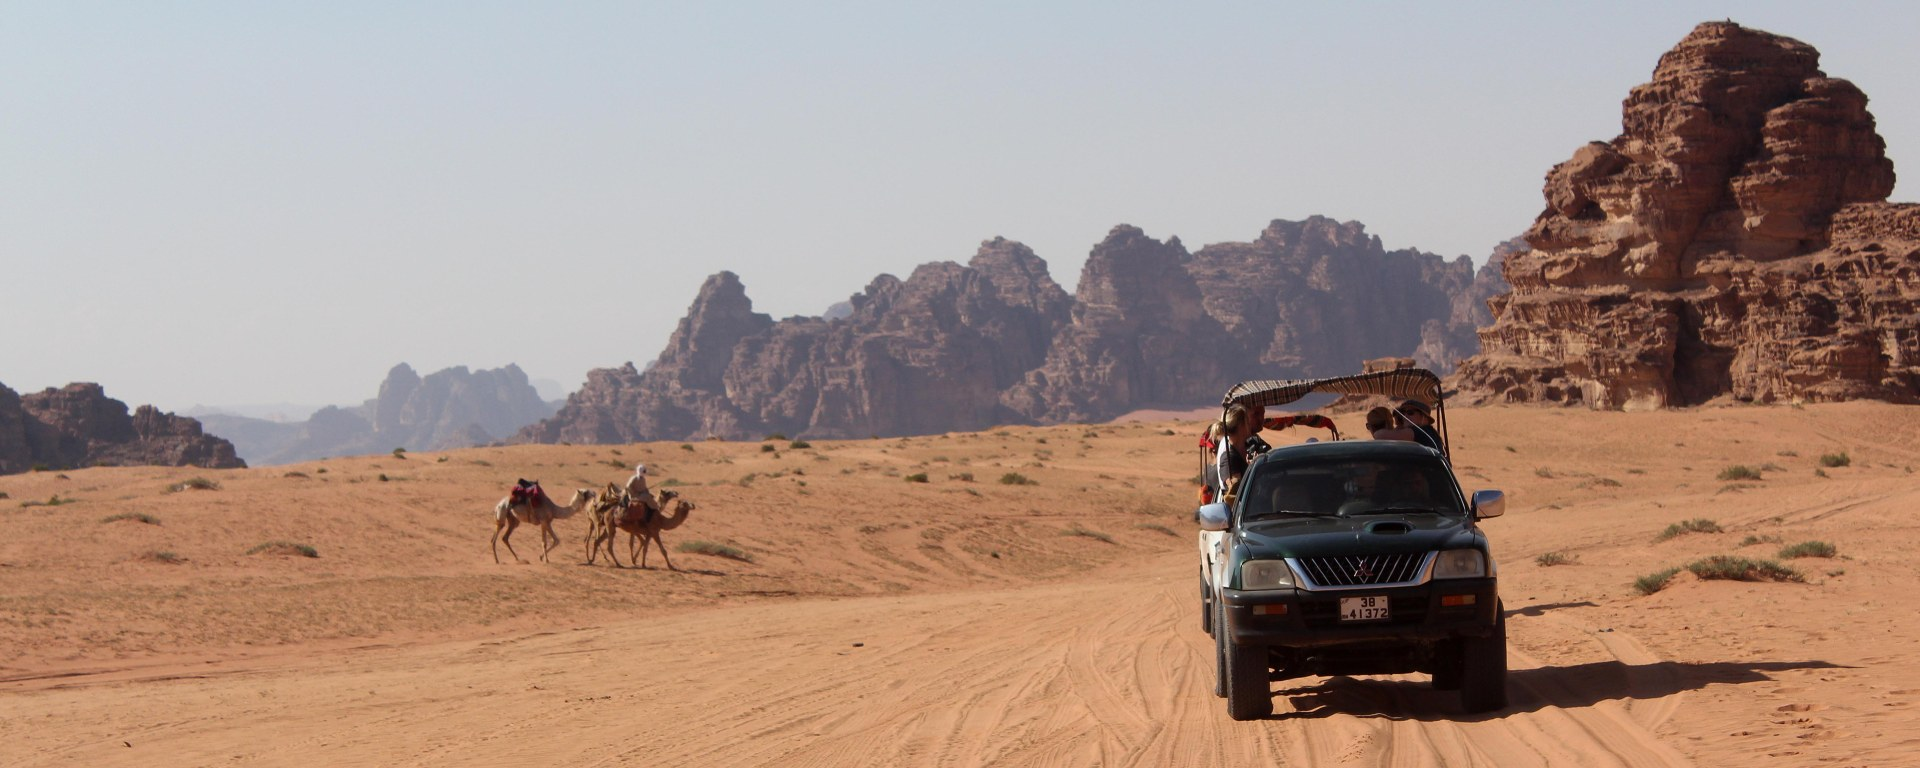 Wadi Rum, travel, photography, photo a day, travel photography, Jordan